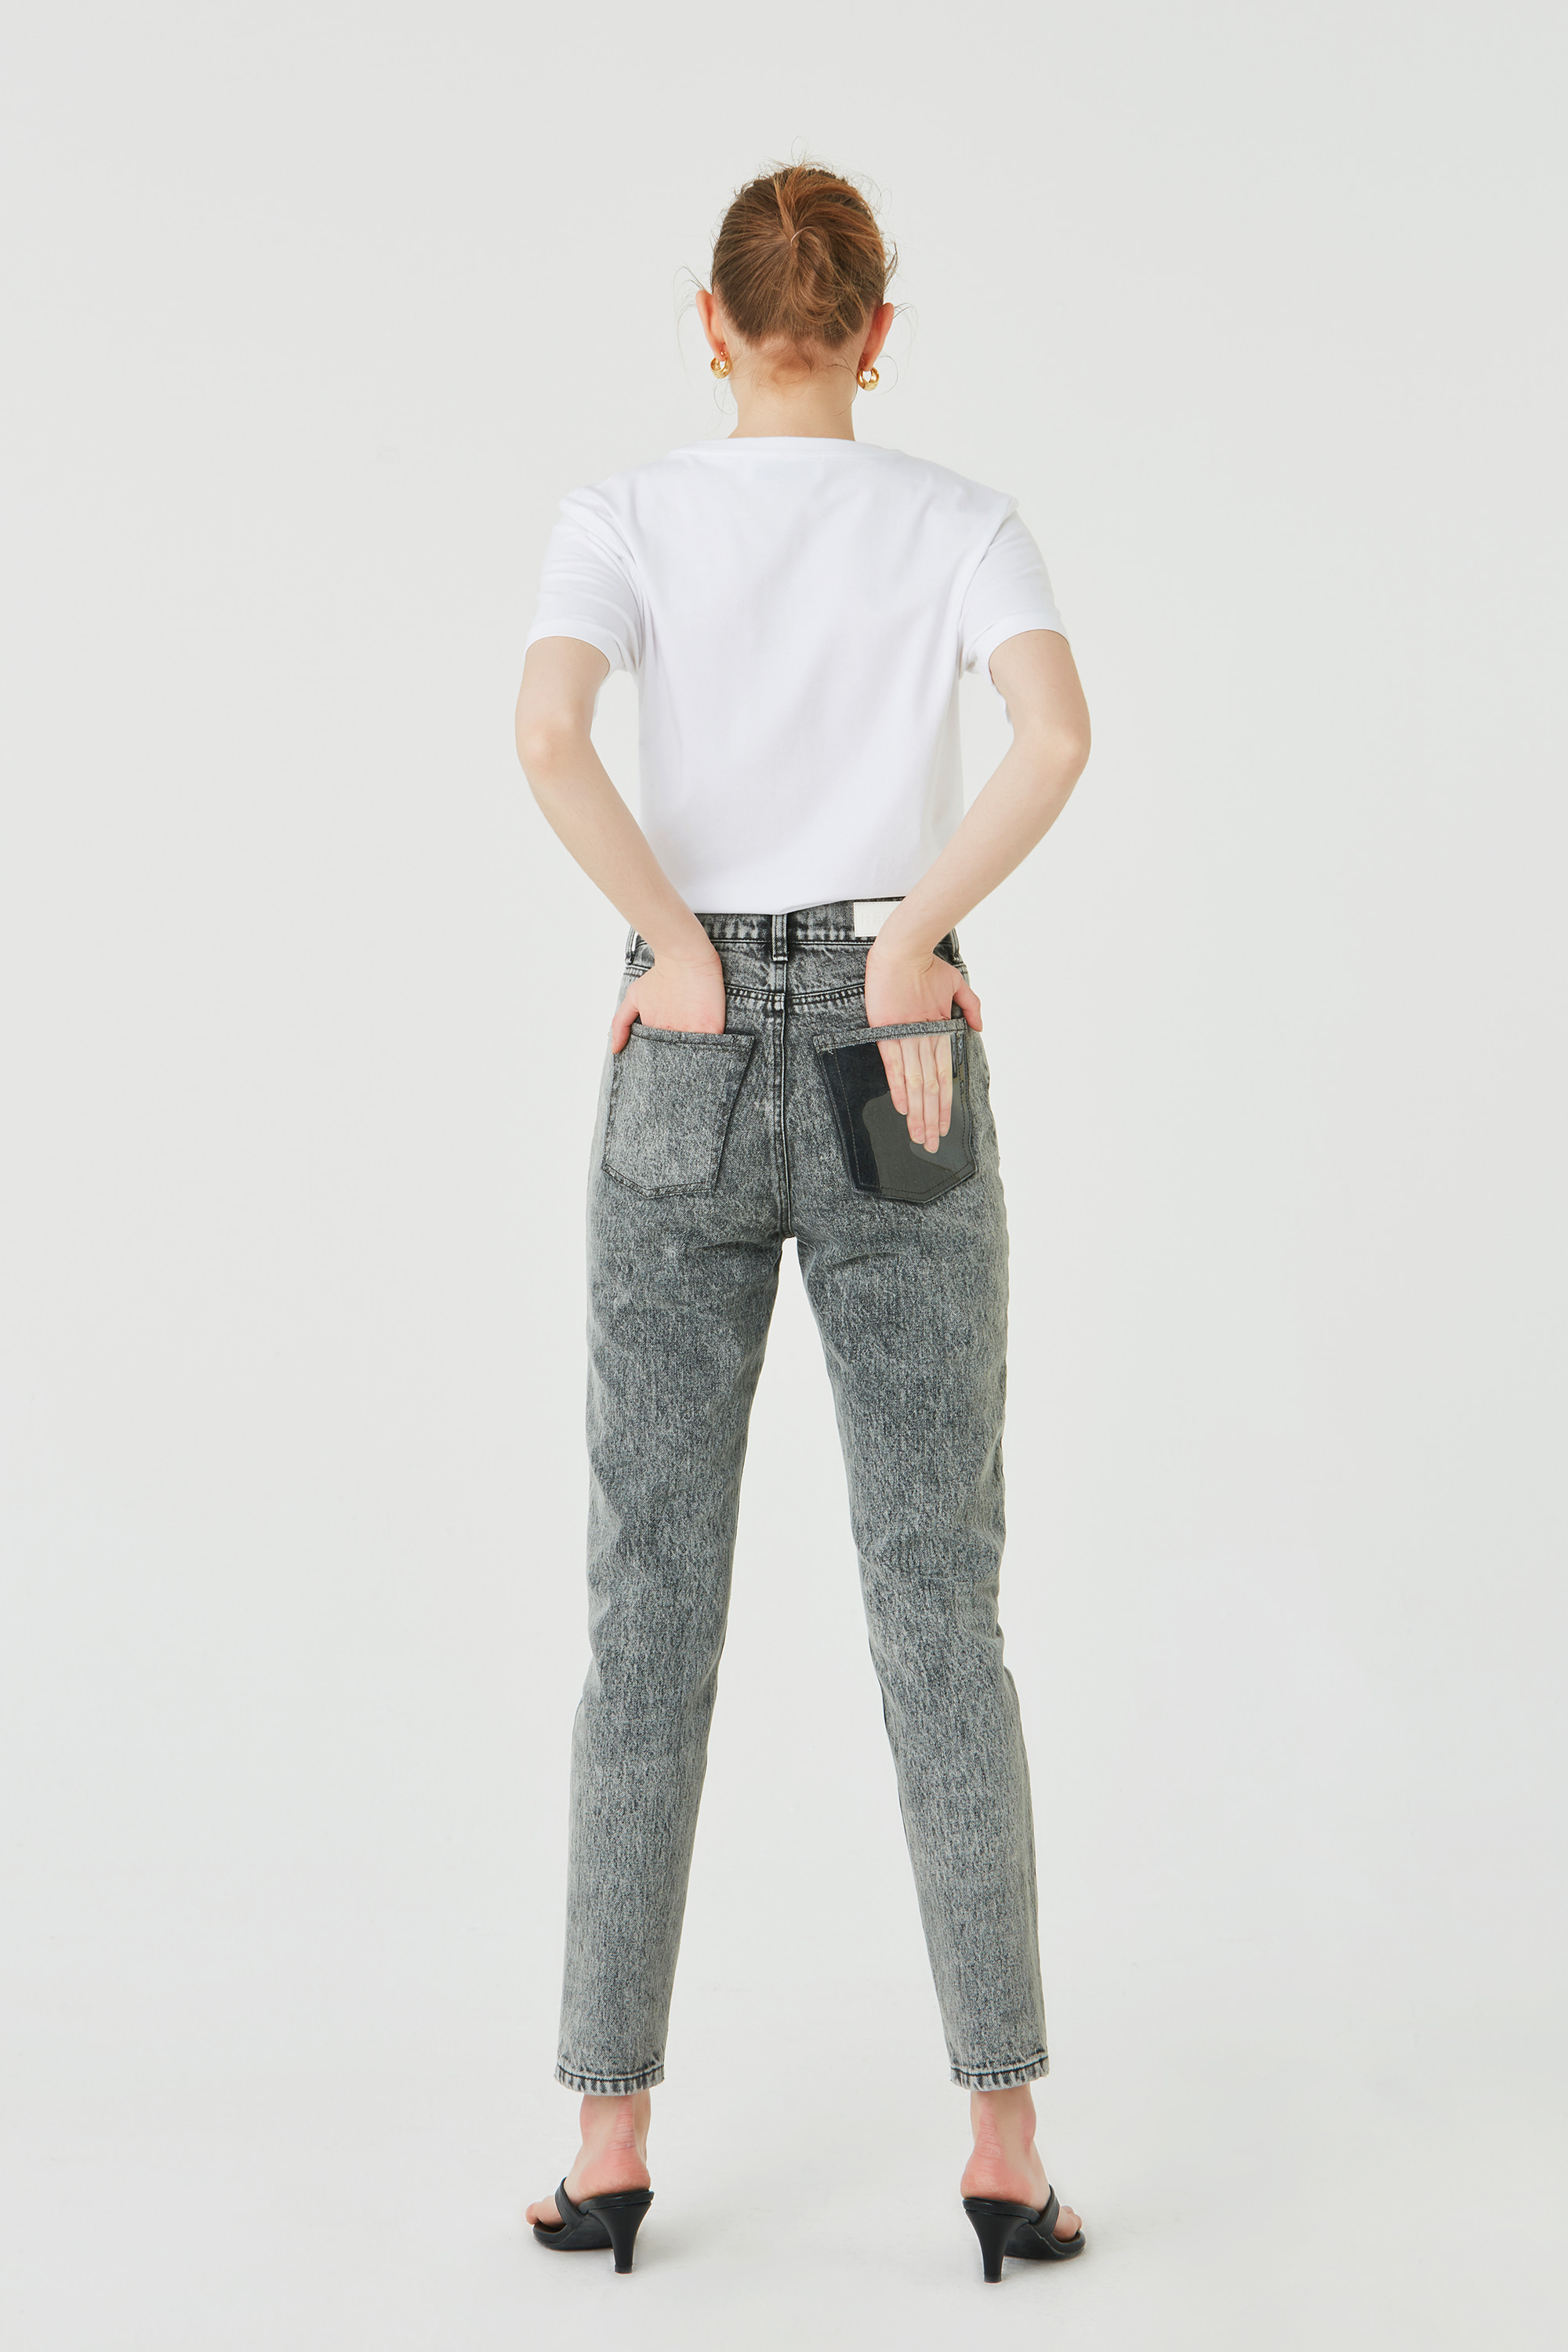 90S GREY STONE-WASHED JEANS (FABRIC FROM ITALY)